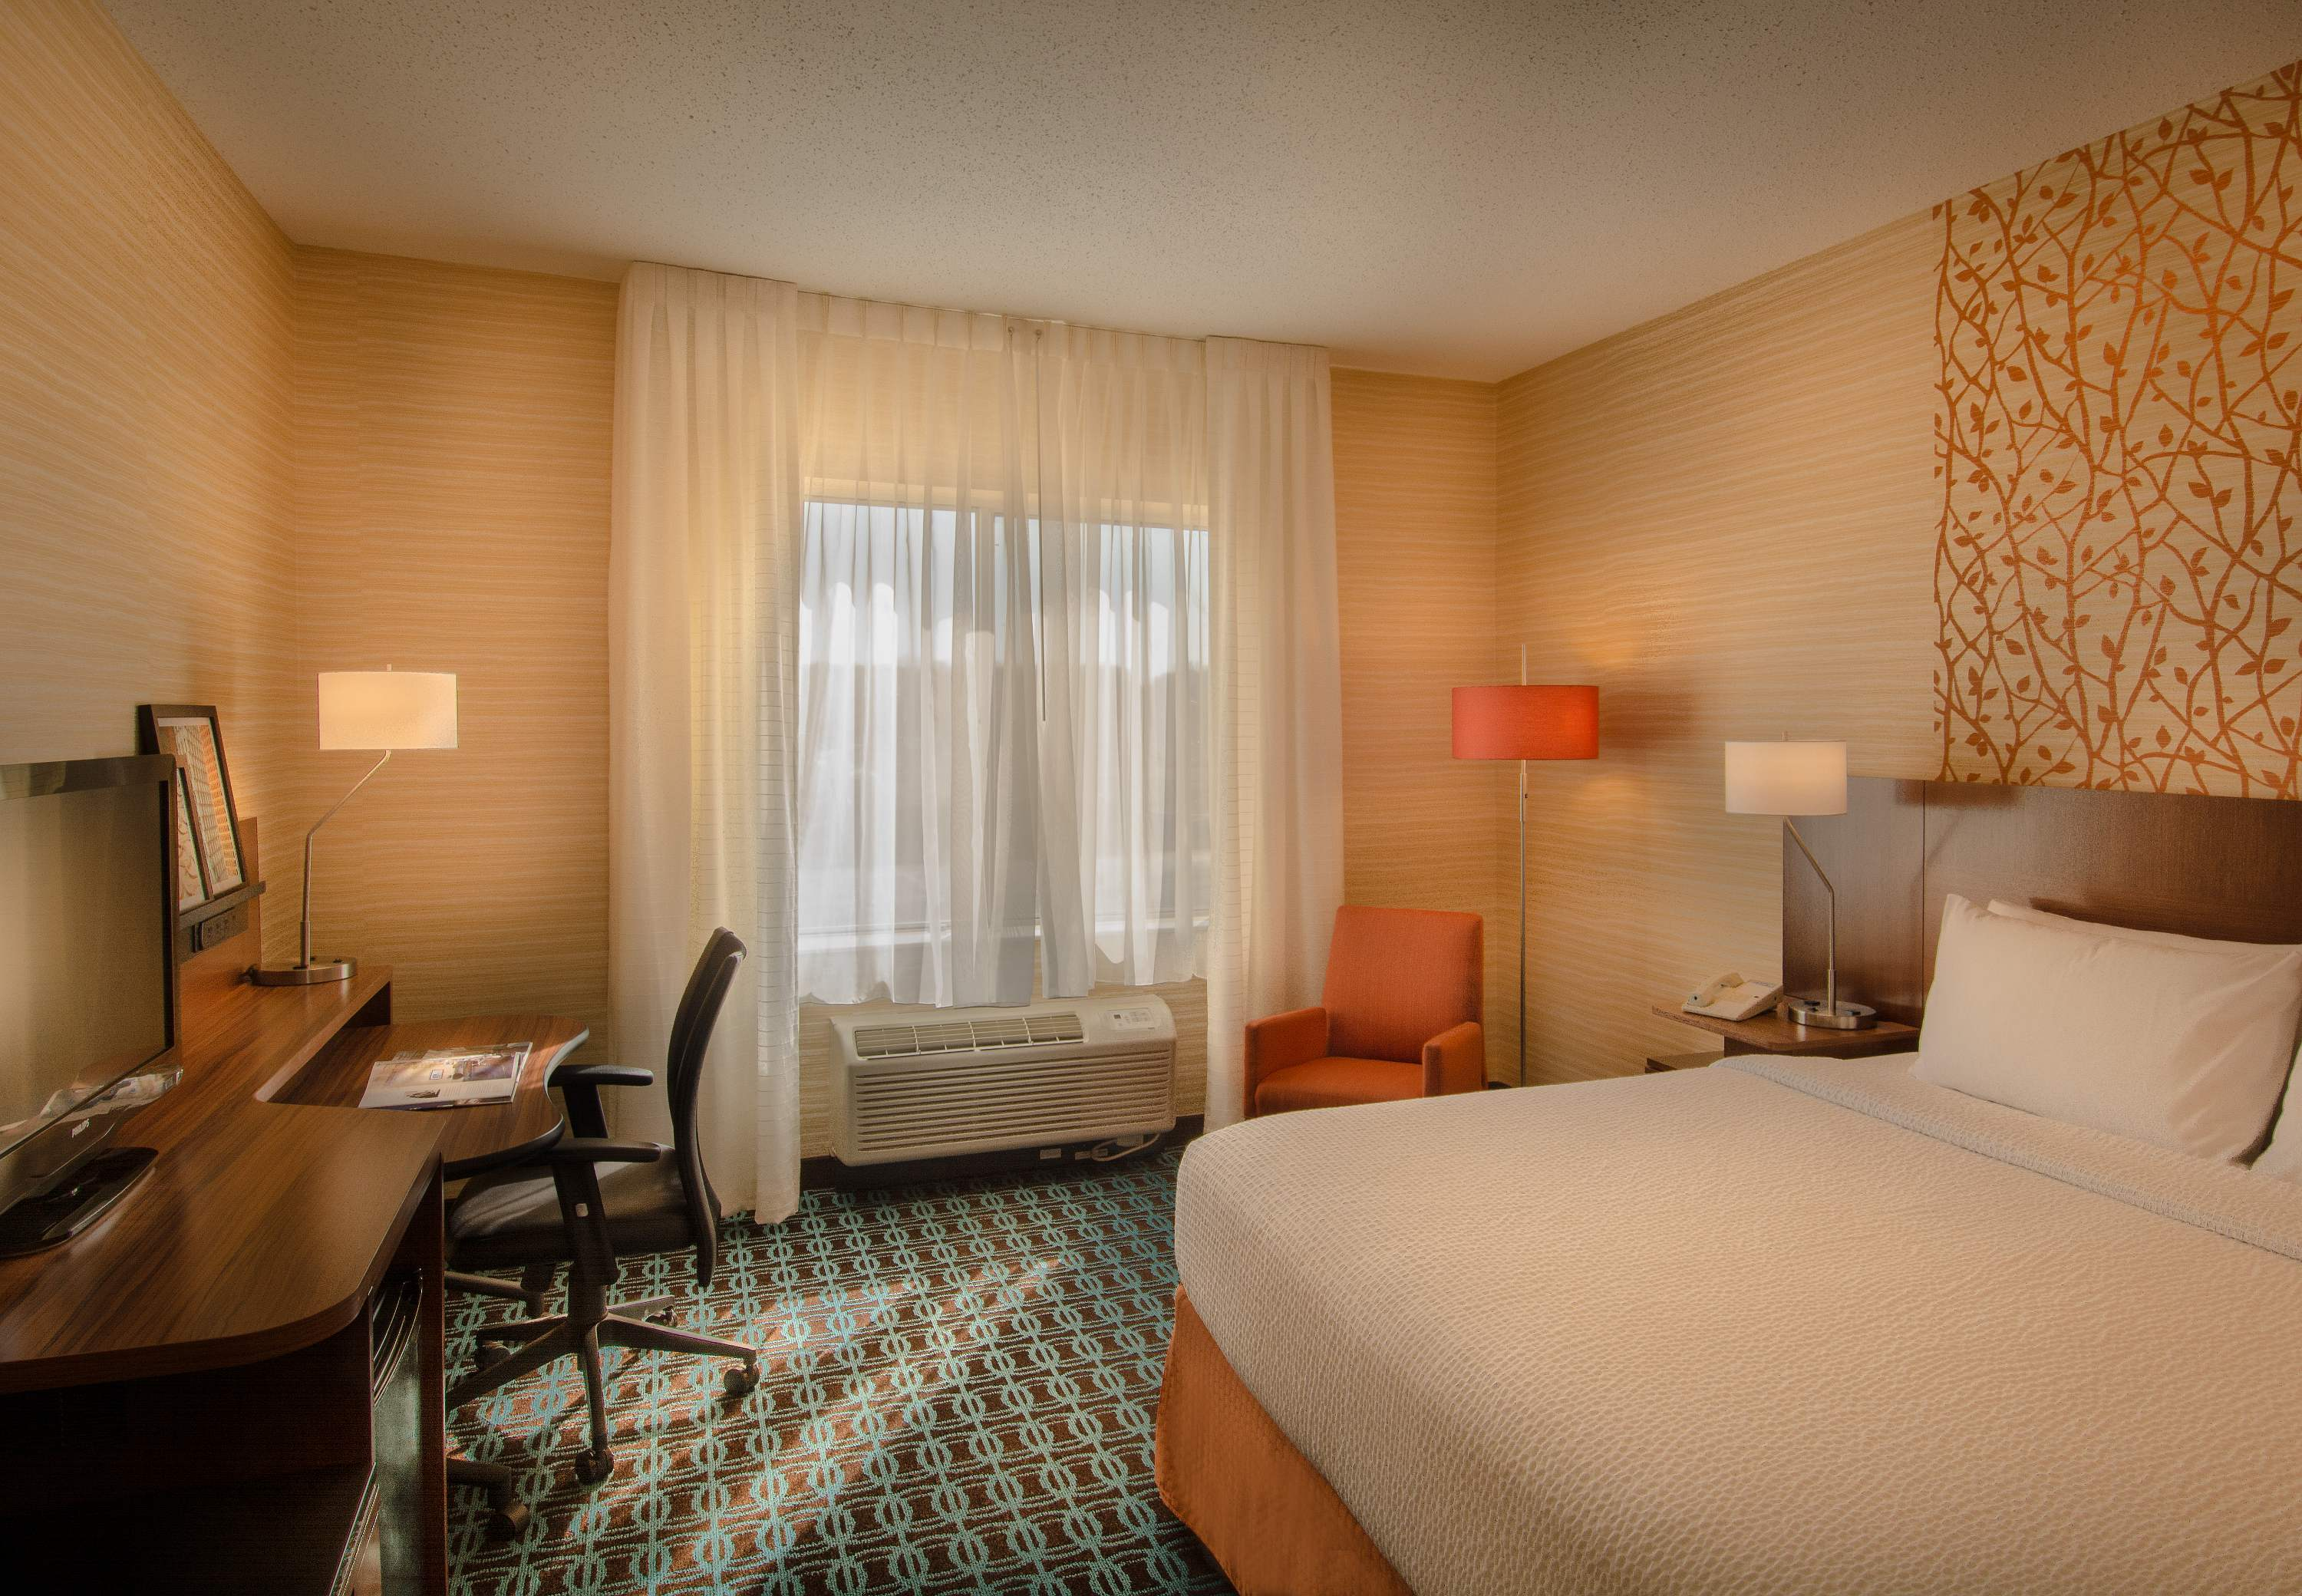 Fairfield Inn & Suites by Marriott at Dulles Airport image 3